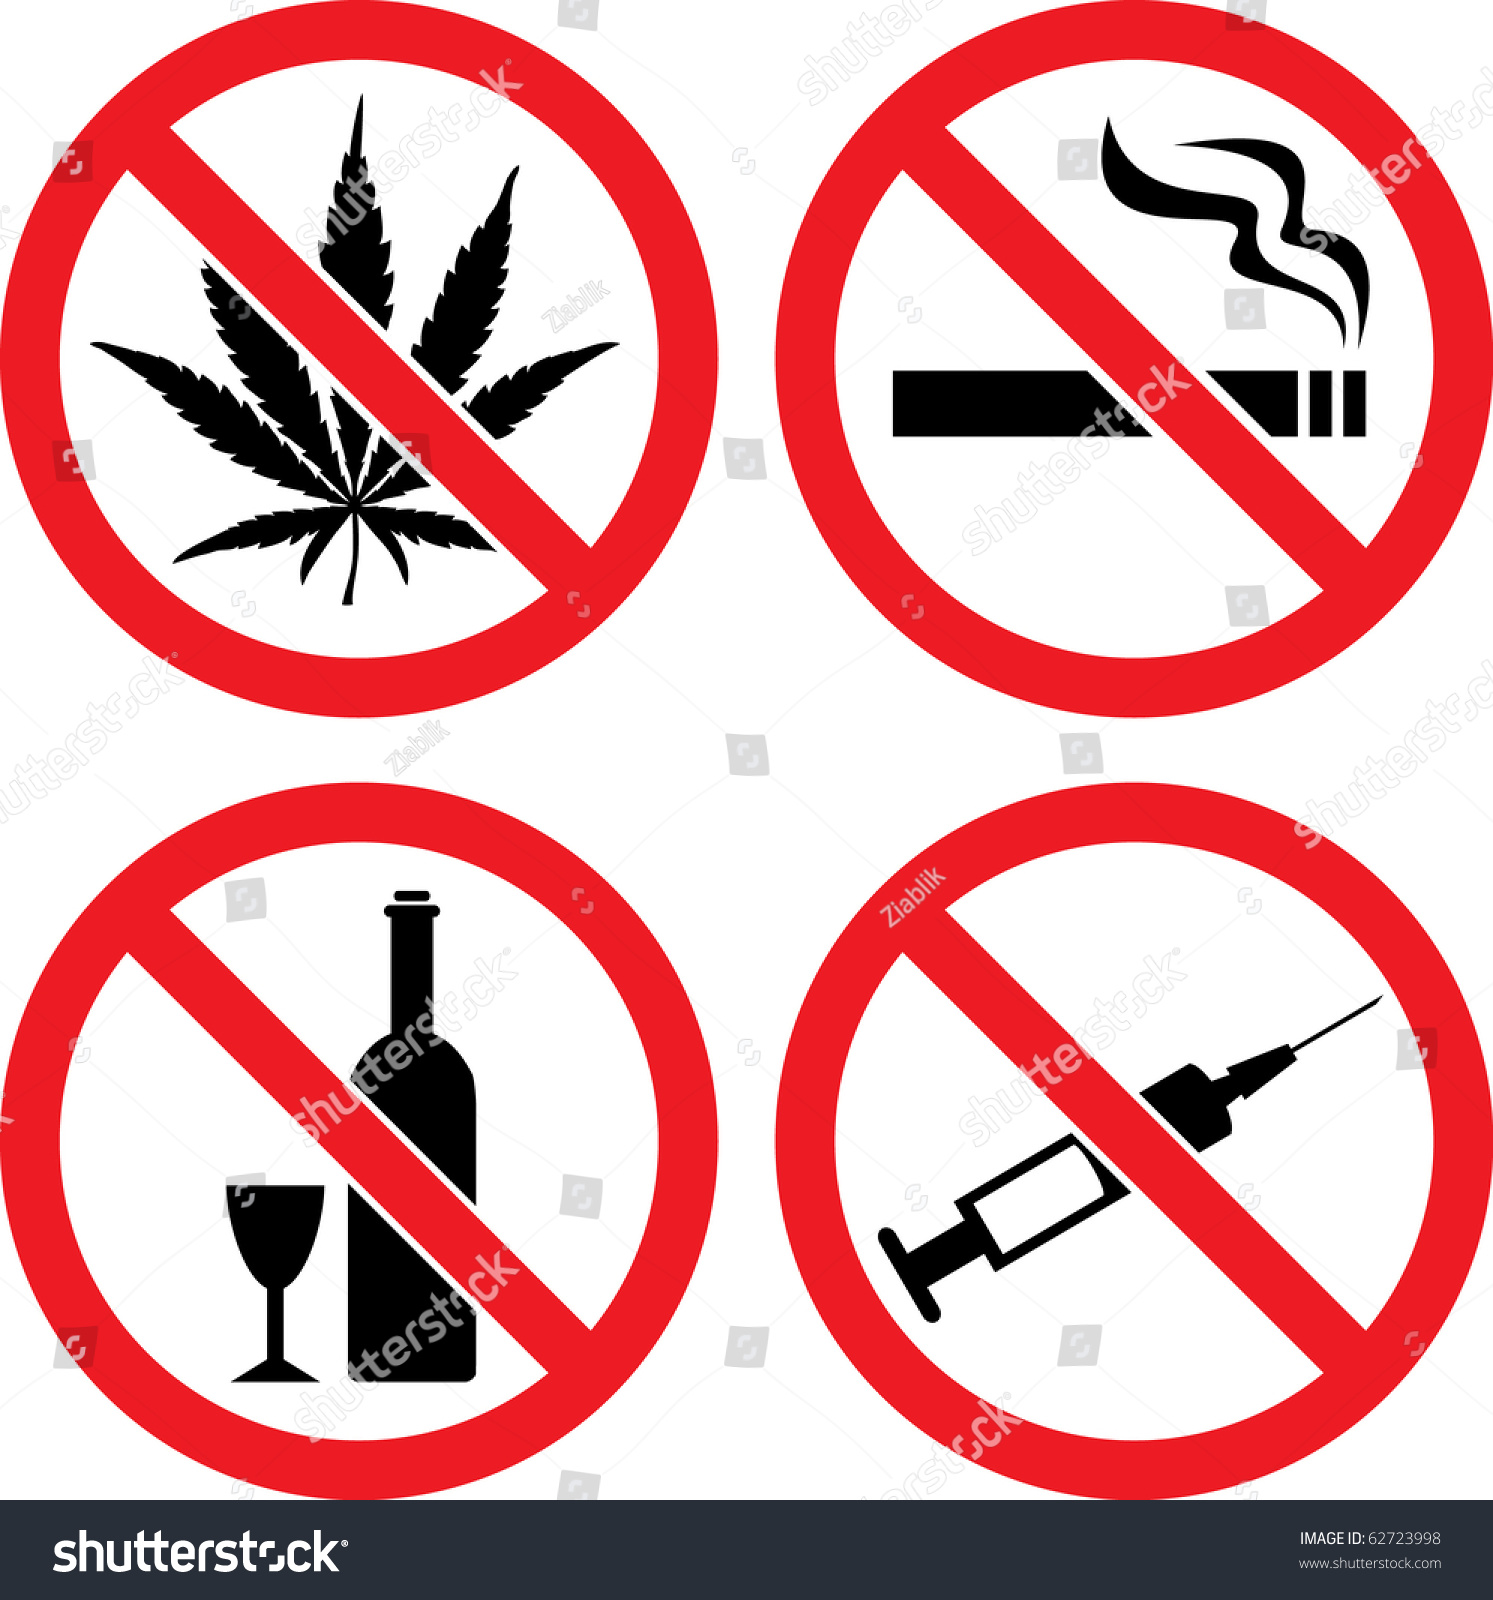 "Forbidding Vector Signs ""No Smoking"", ""No Drugs"", ""No Cannabis"" and ...: www.shutterstock.com/pic-62723998/stock-vector-forbidding-vector..."